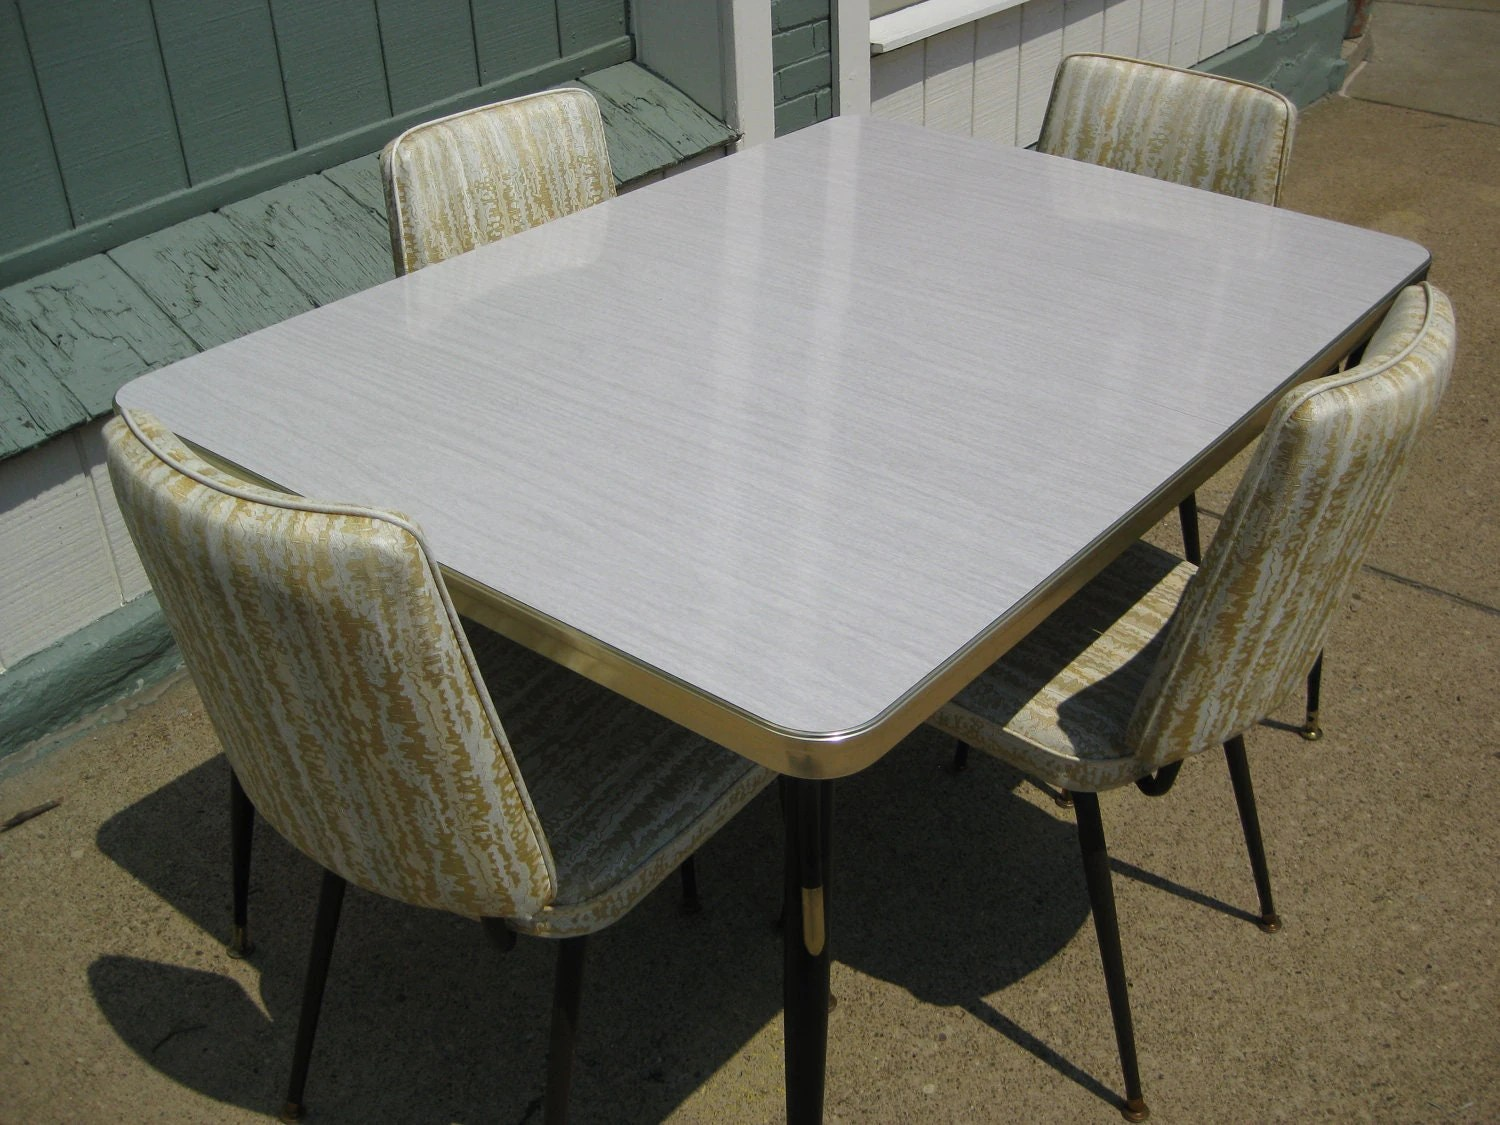 Formica Table And Chairs Vintage 1950 39s Formica Kitchen Table W 4 Chairs 50 By